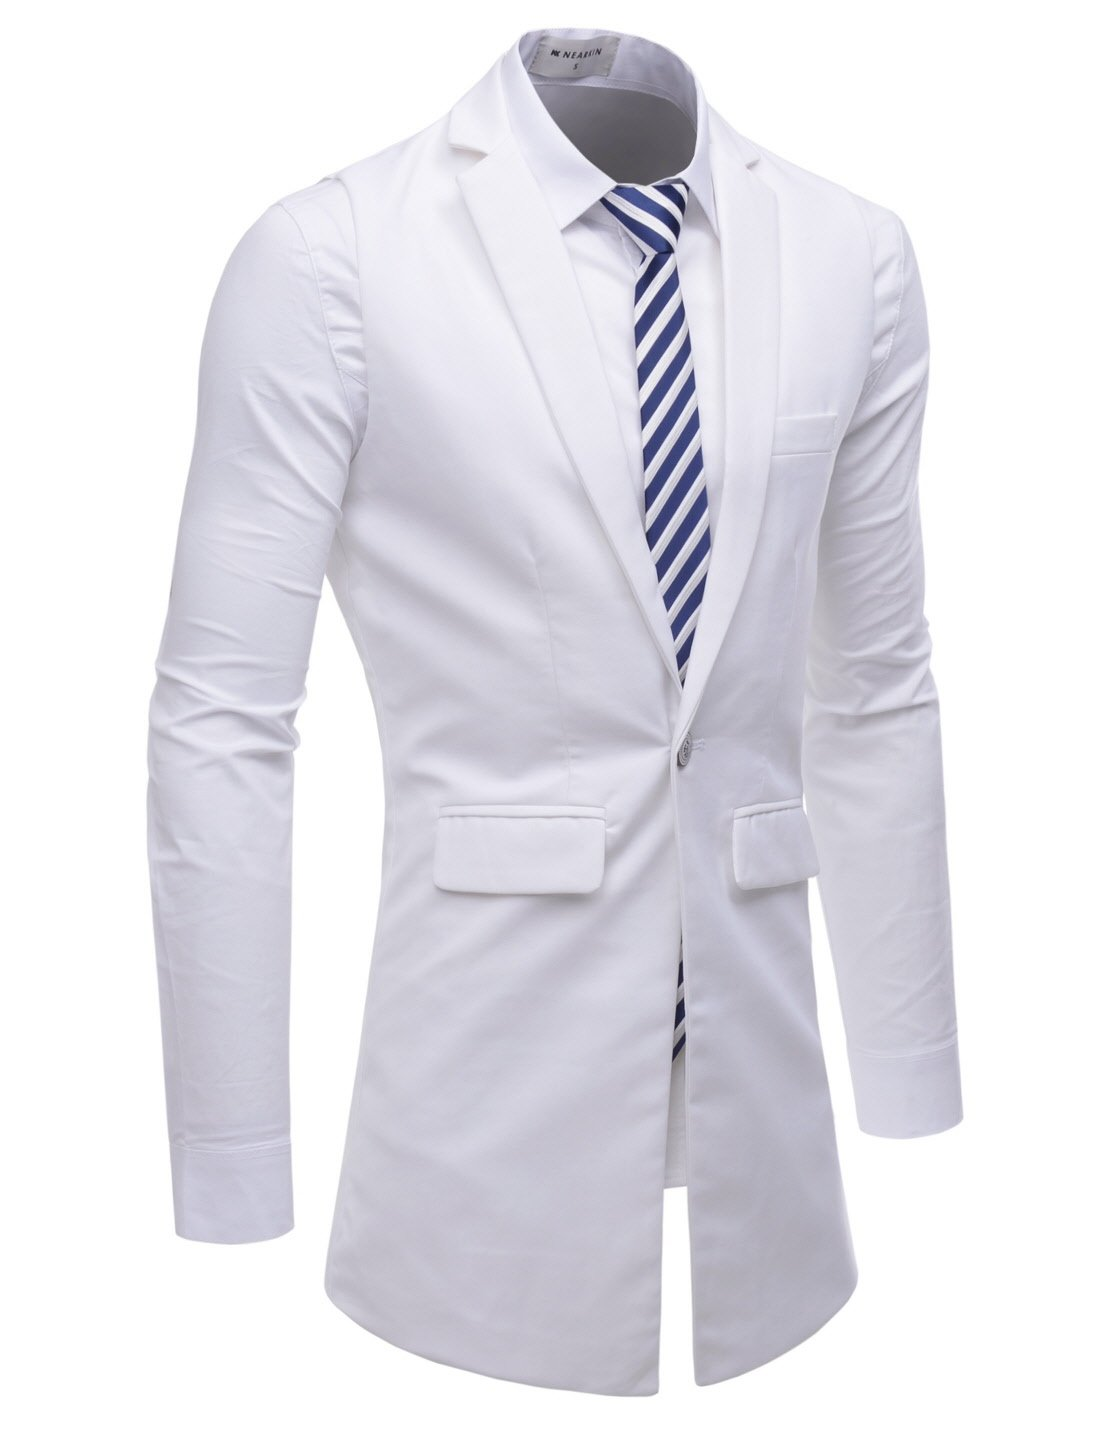 NEARKIN (NKNKLV600) Mens Notched Lapel One Button Slim Fit Long Waistcoat WHITE US XXXL(Tag size 3XL)